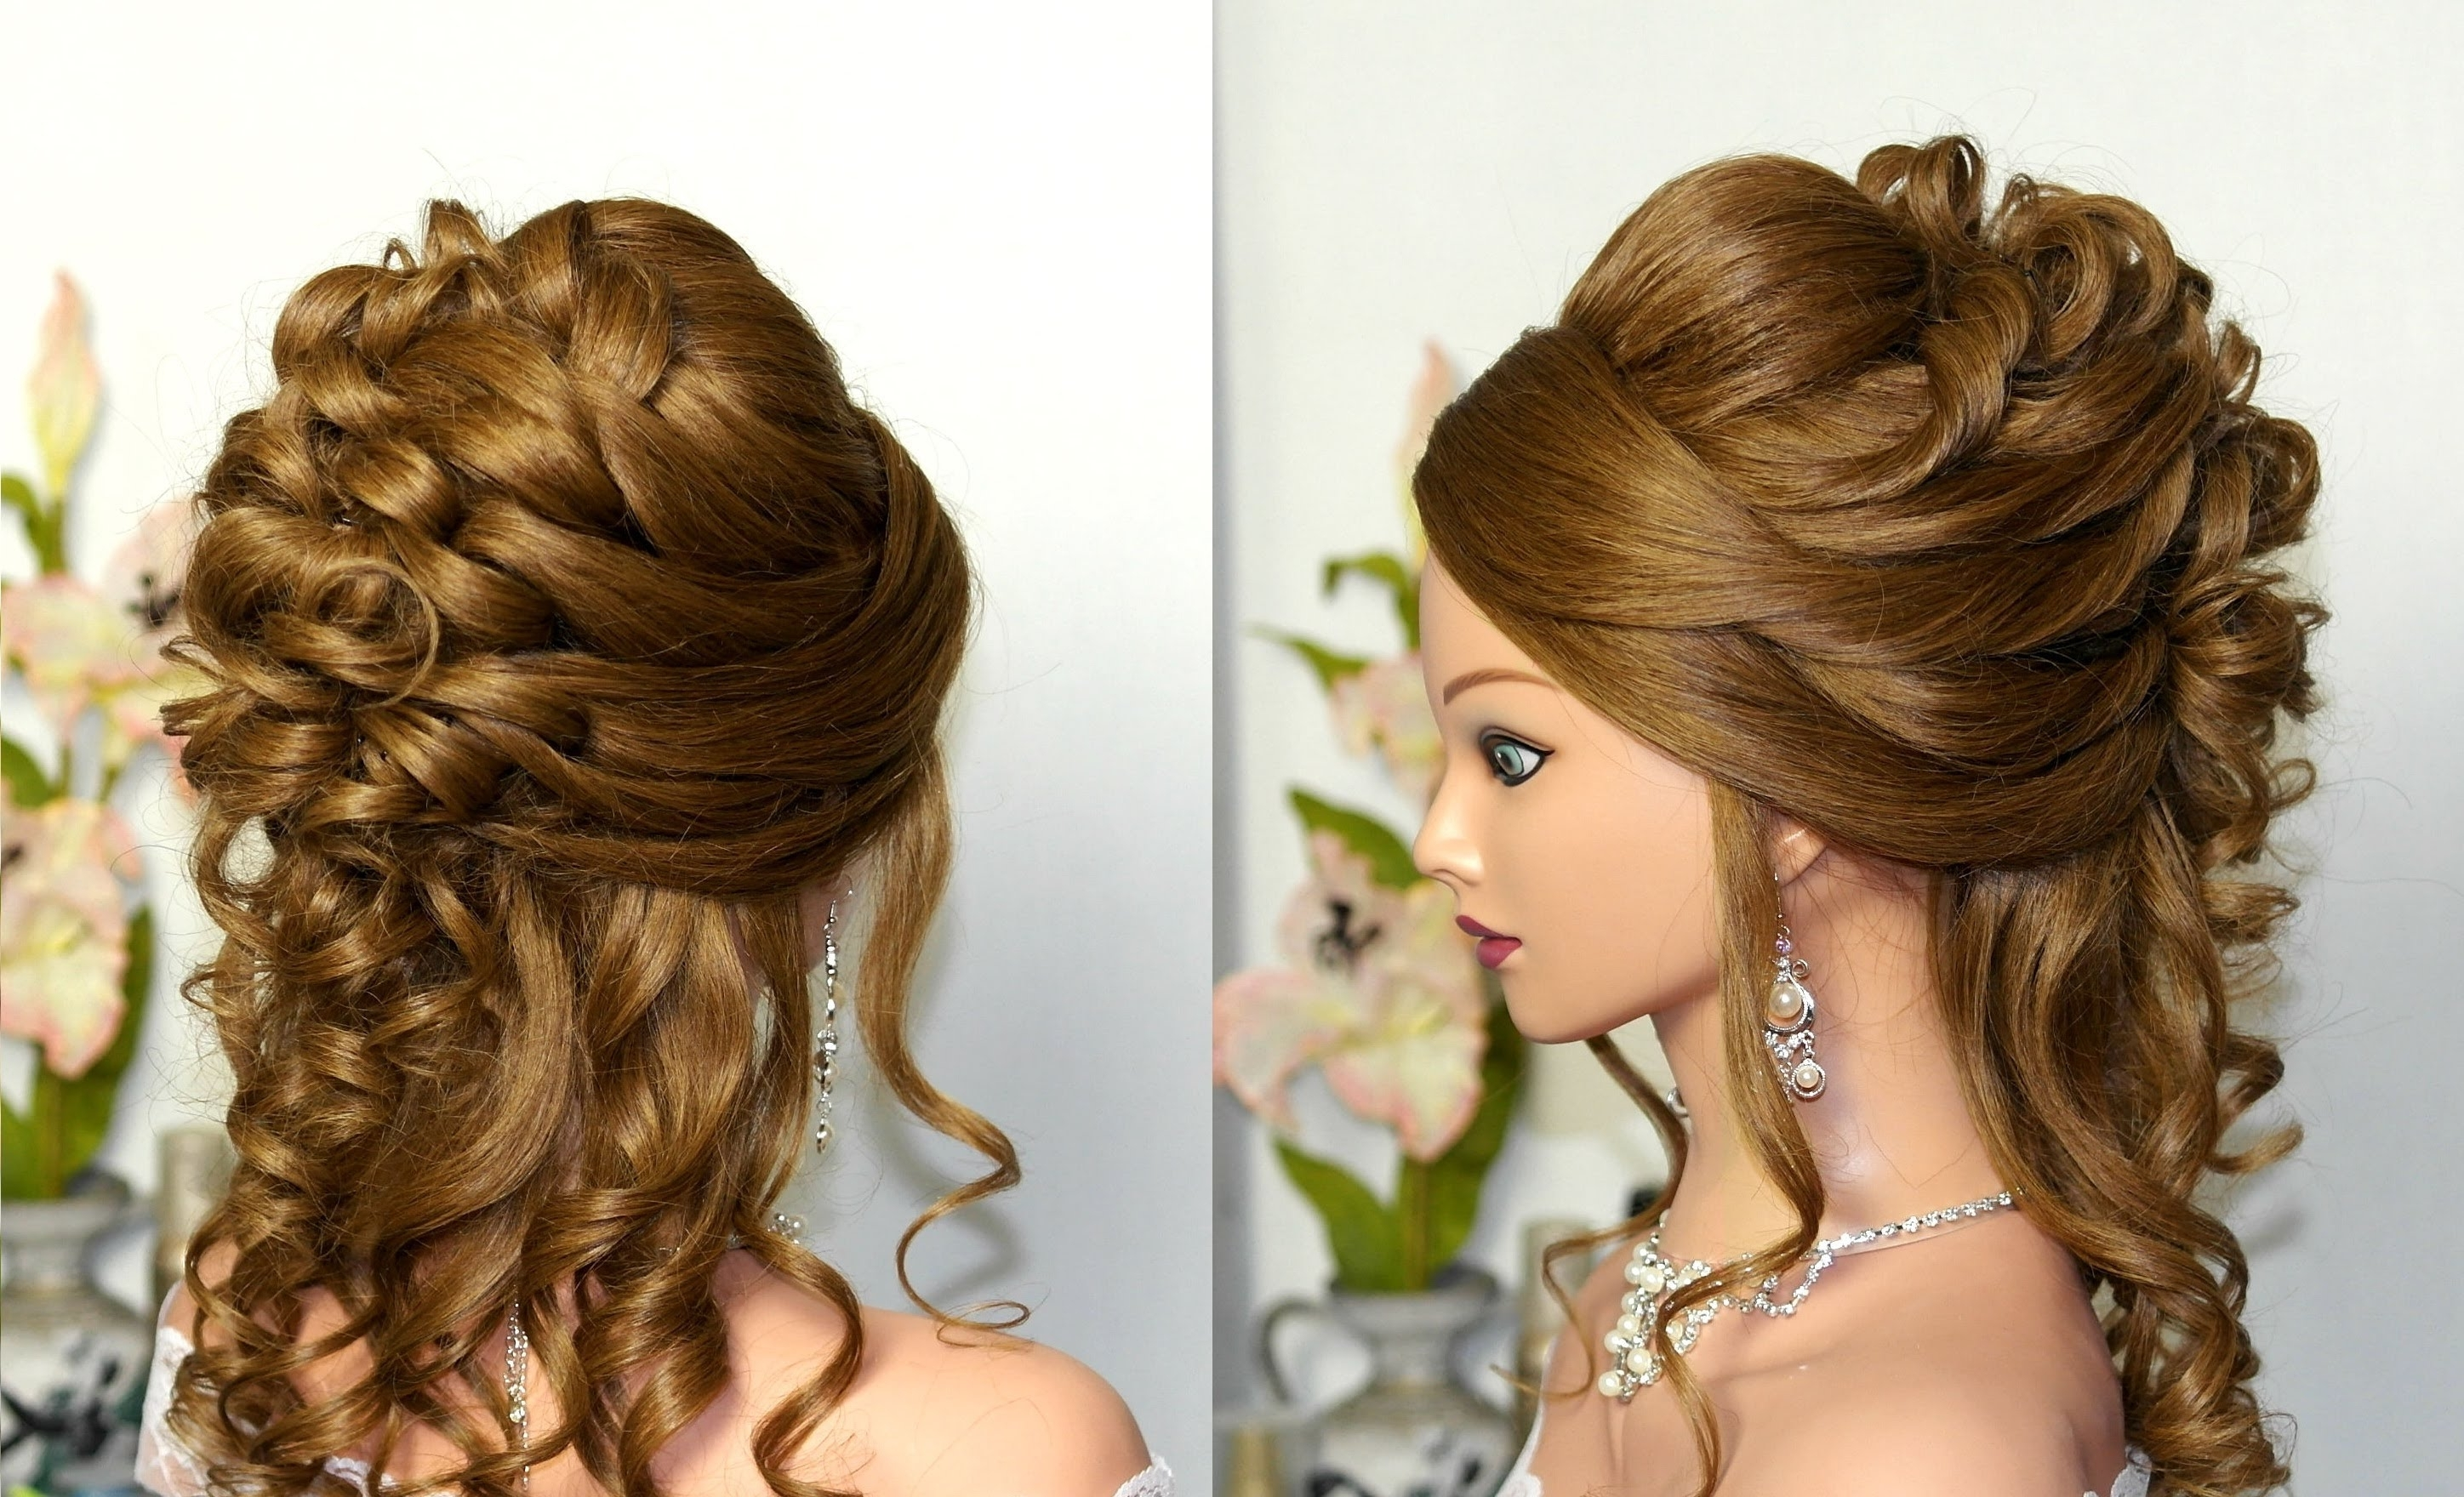 Formal Fancy Hairstyles For Long Hair In Dark Brown Color Stock Regarding Popular Summer Wedding Hairstyles For Long Hair (View 4 of 15)